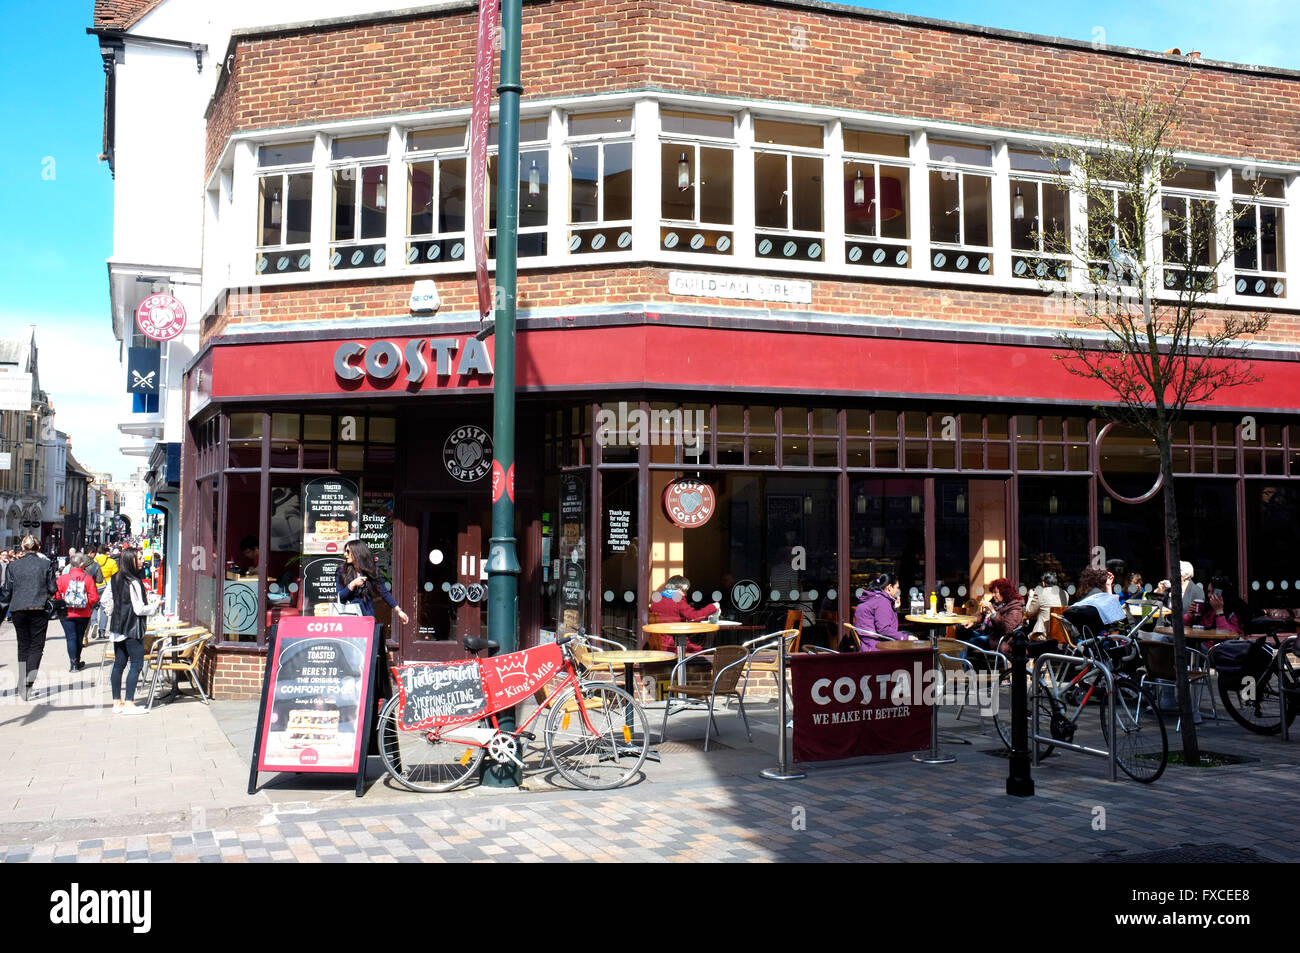 costa coffeehouse branch in the city of canterbury east kent uk april 2016 - Stock Image